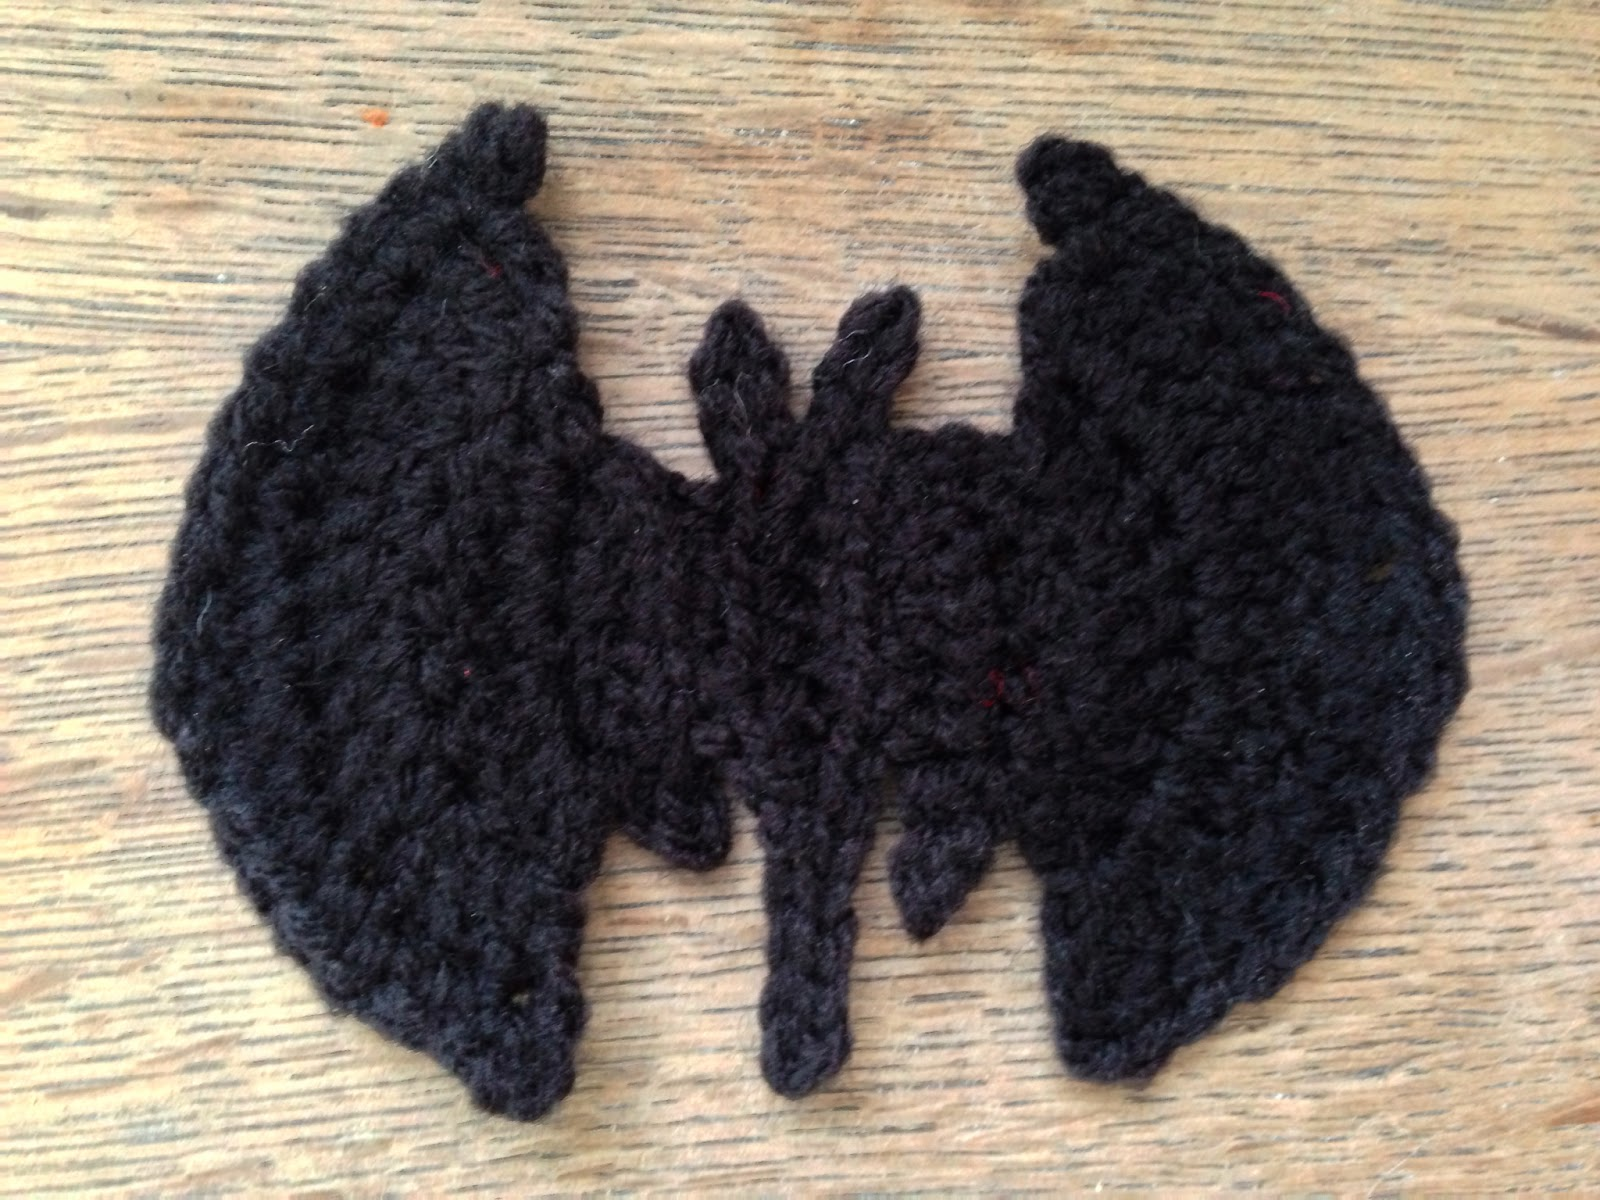 Free Crochet Patterns In Symbols : Crochet Bat Symbol Steel&Stitch